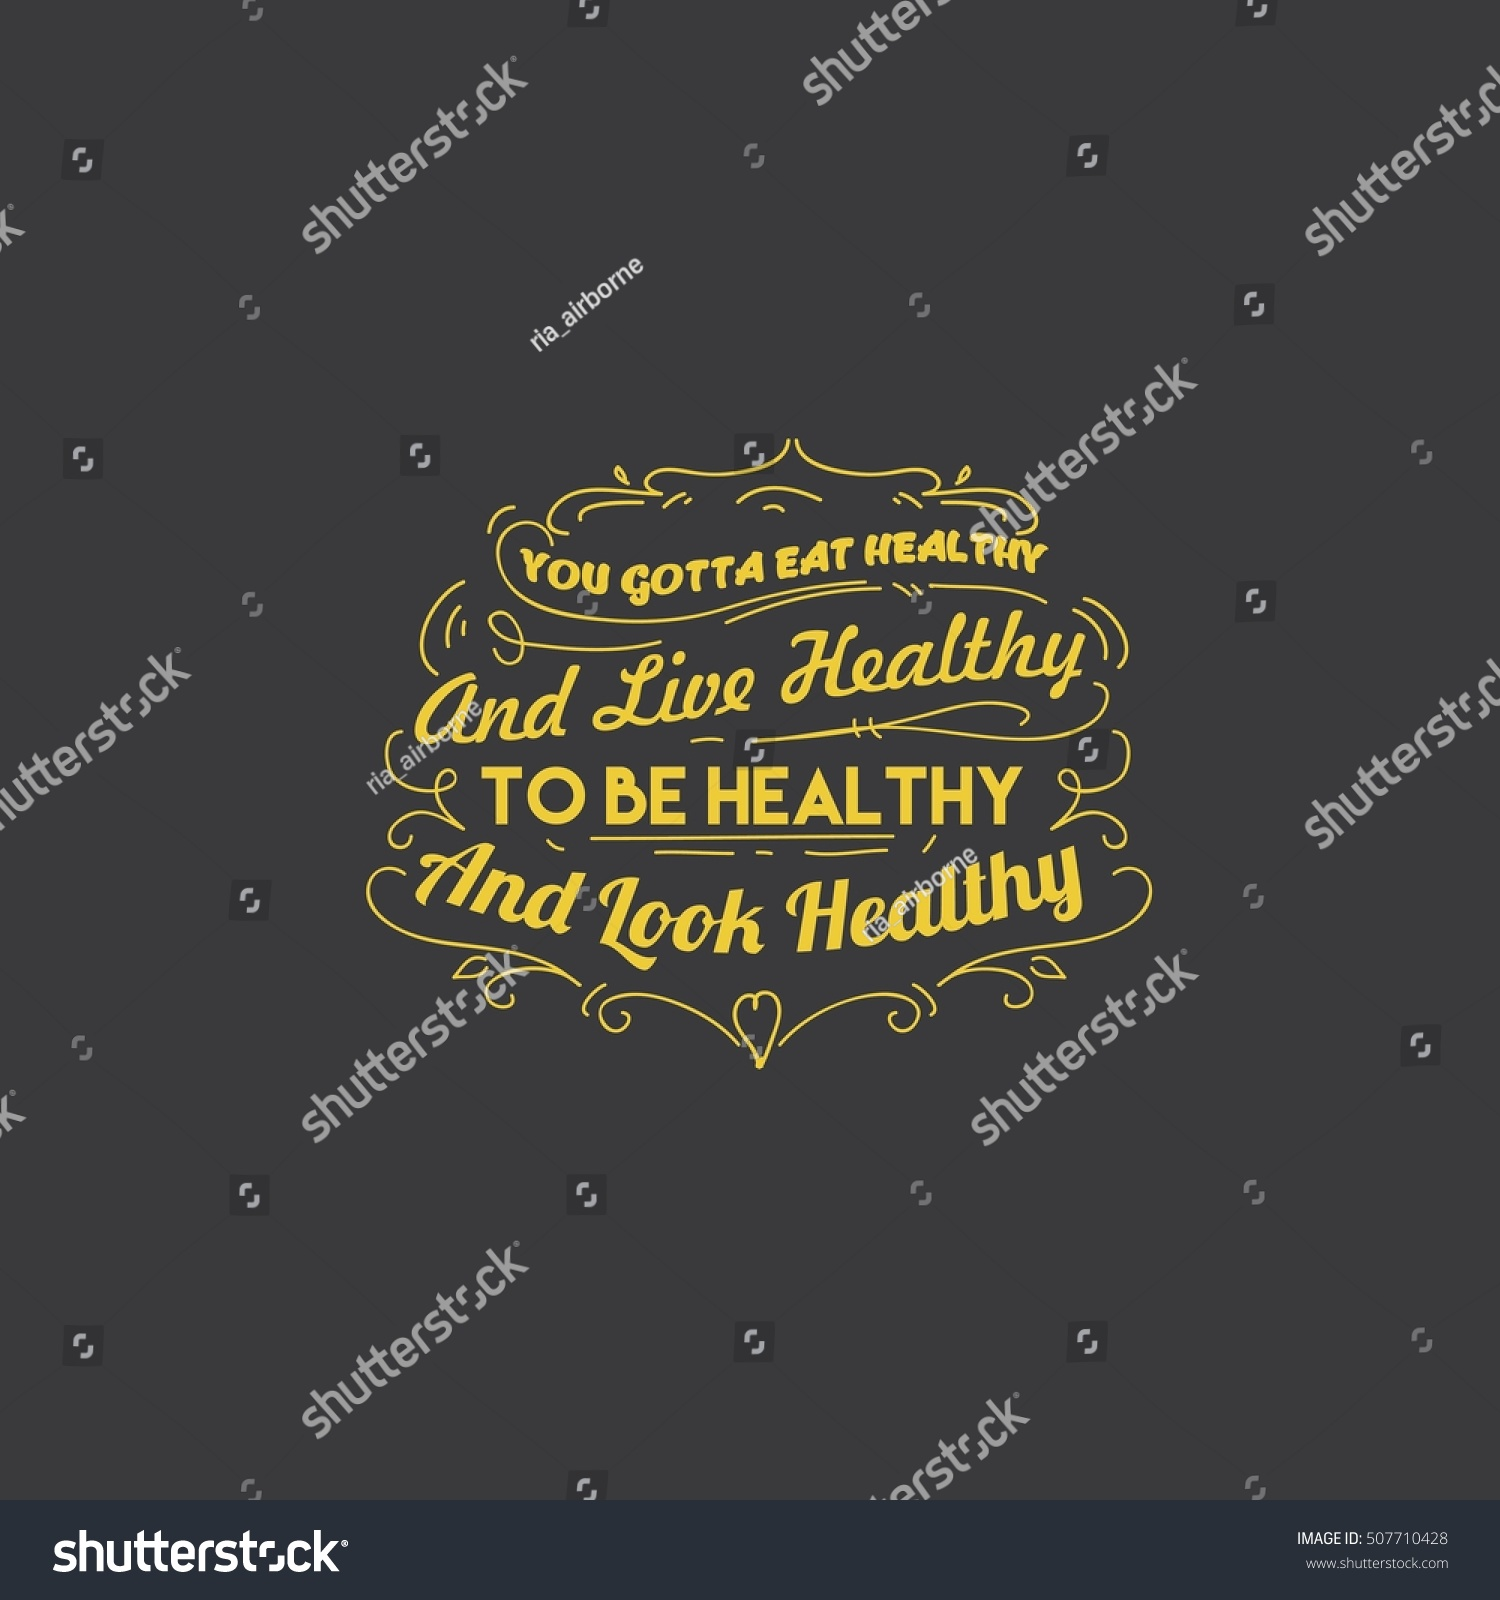 Good Health Quotes Health Quotes Good Food Quotes Stock Vector 507710428  Shutterstock